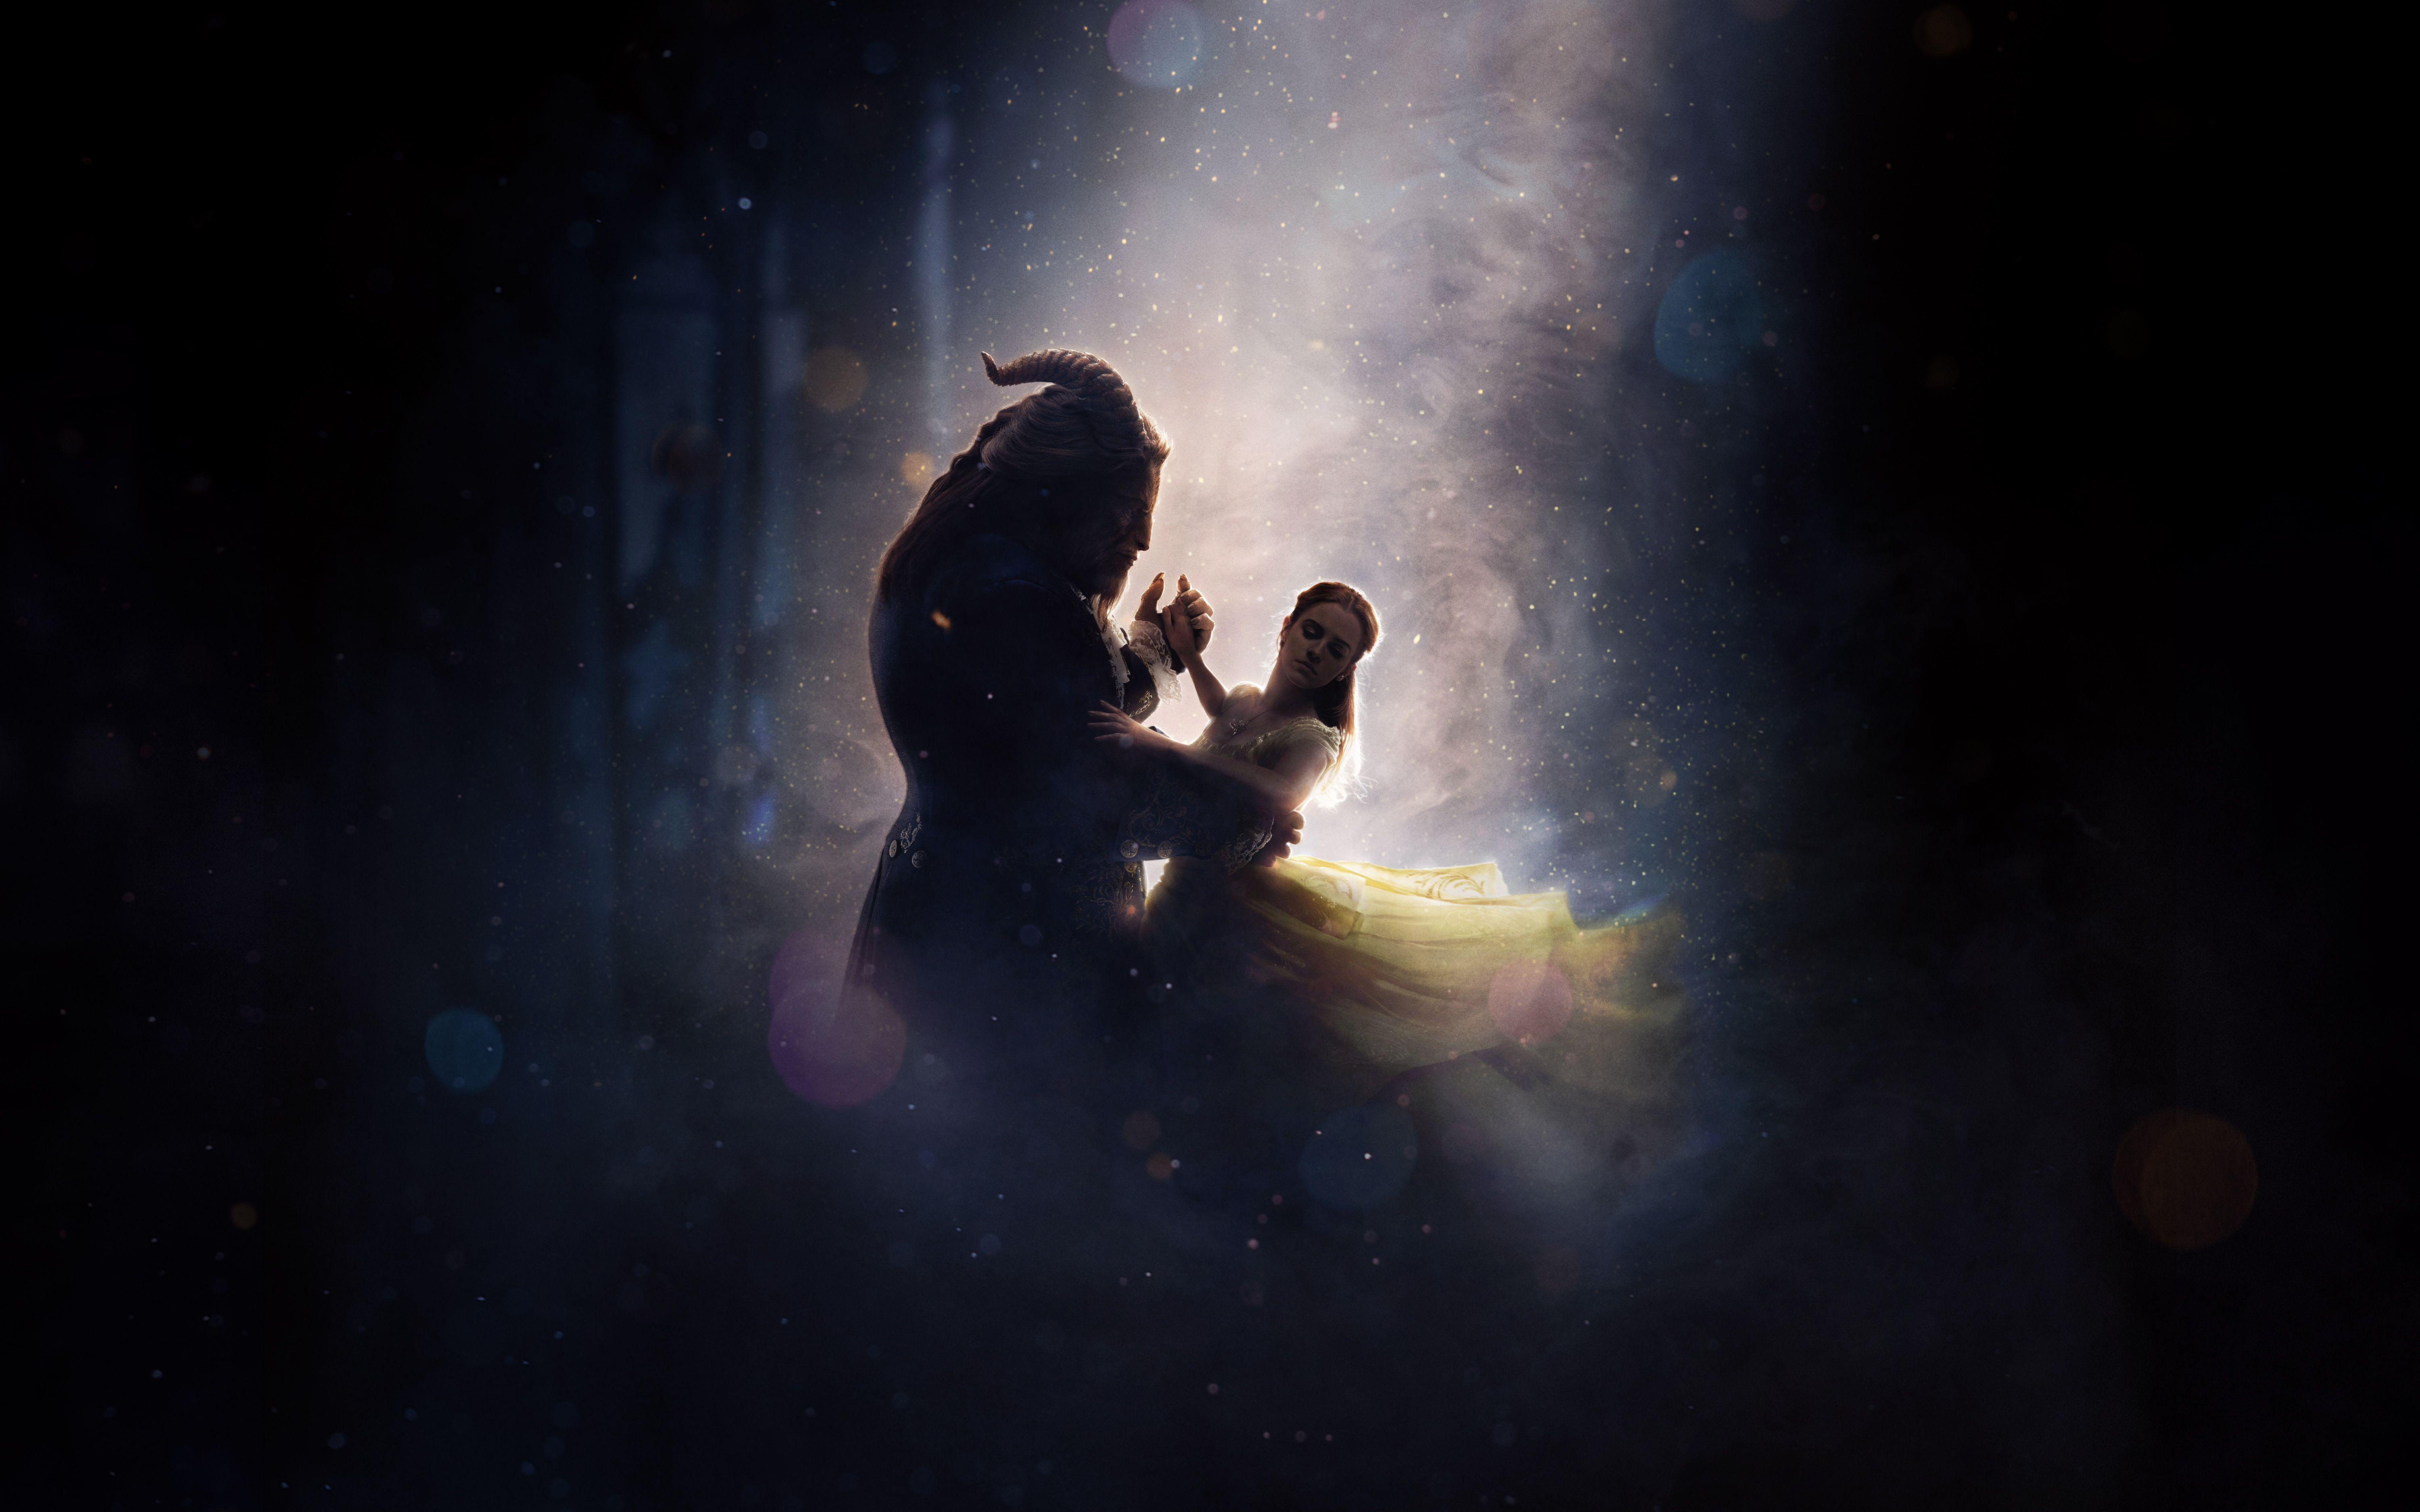 Beauty And The Beast Wallpapers Top Free Beauty And The Beast